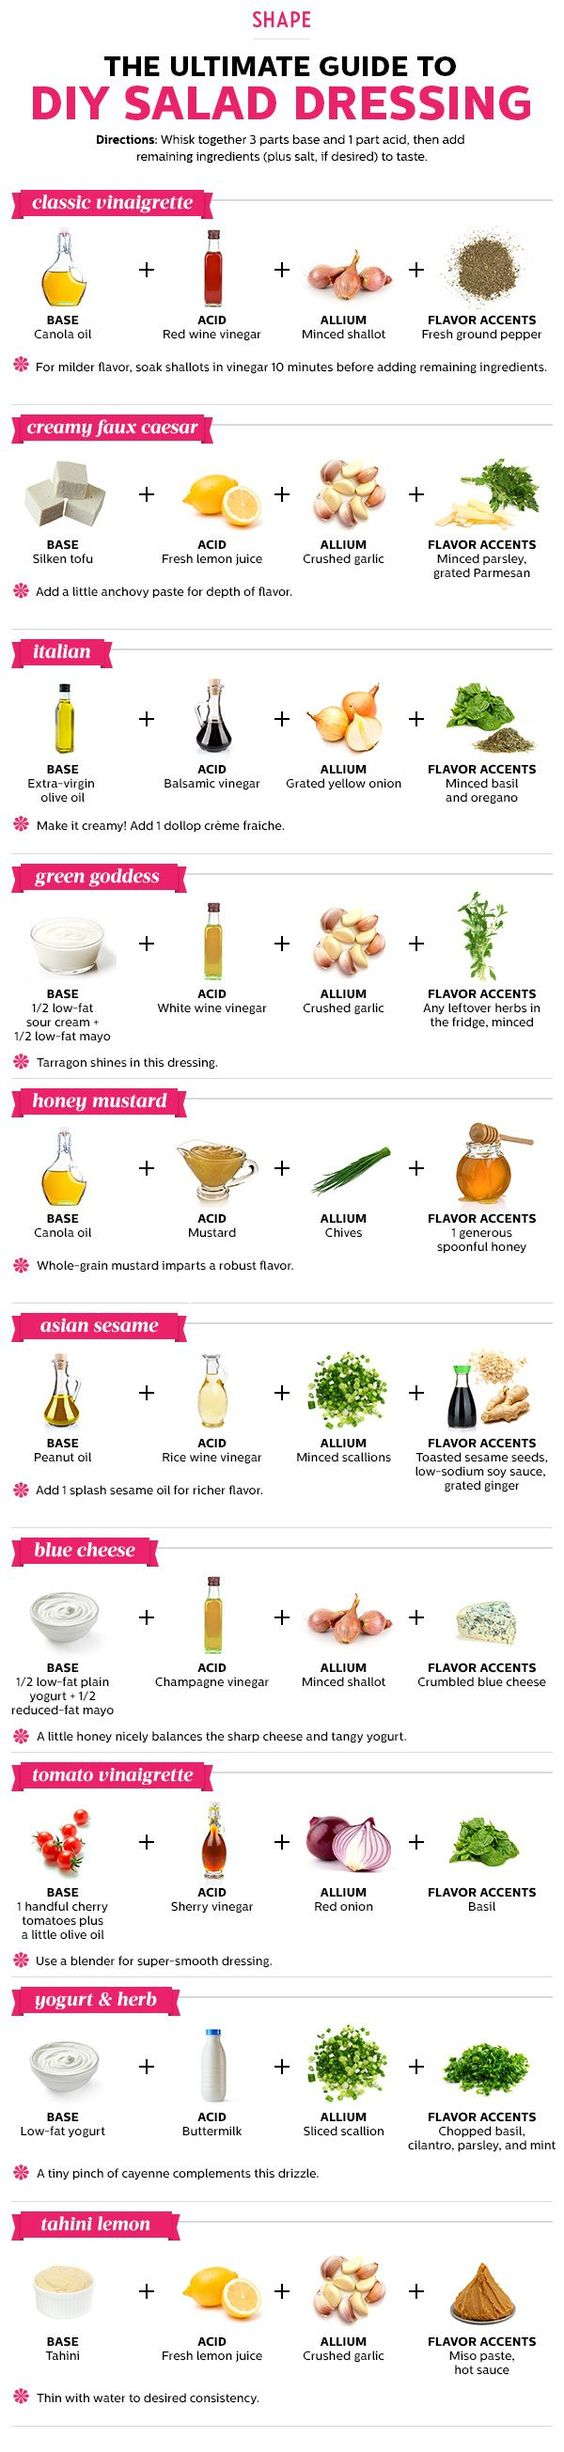 the ultimate guide to diy salad dressing #clean #recipes #eatclean #healthy #recipe